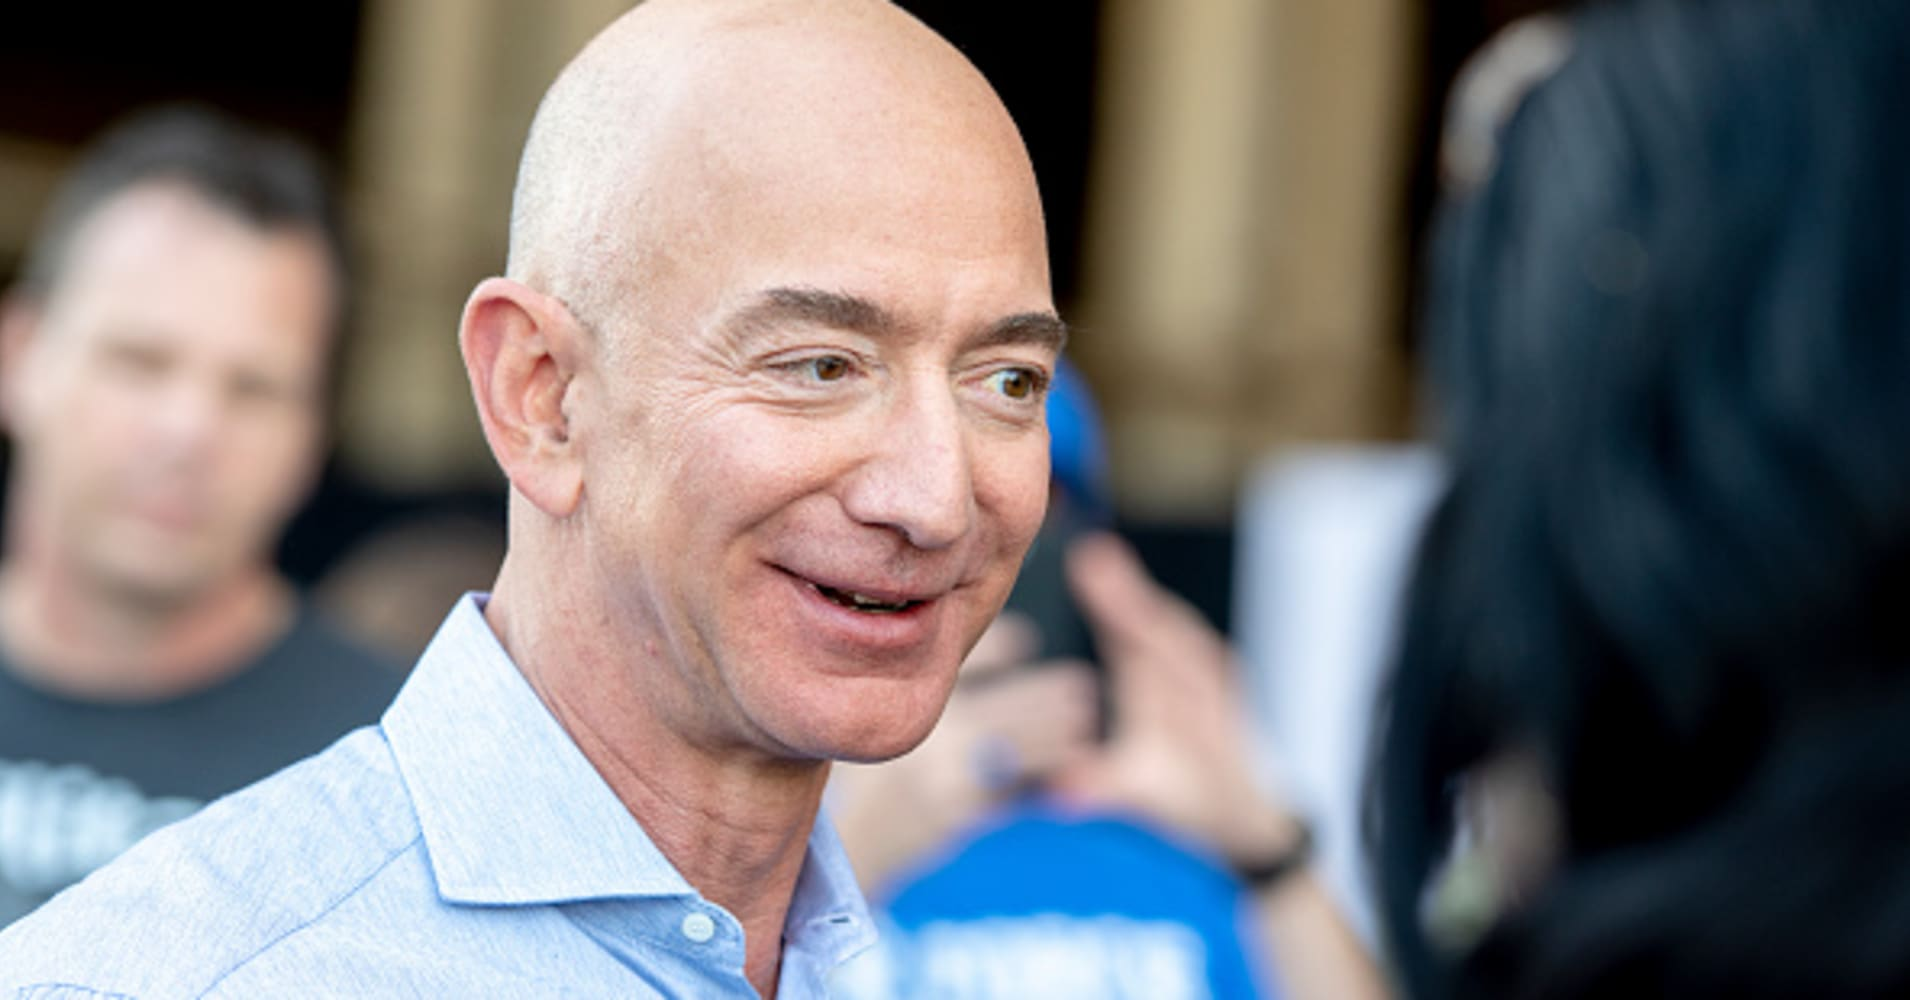 Wall Street expects Amazon to bounce back after the stock suffered its worst quarter in a decade